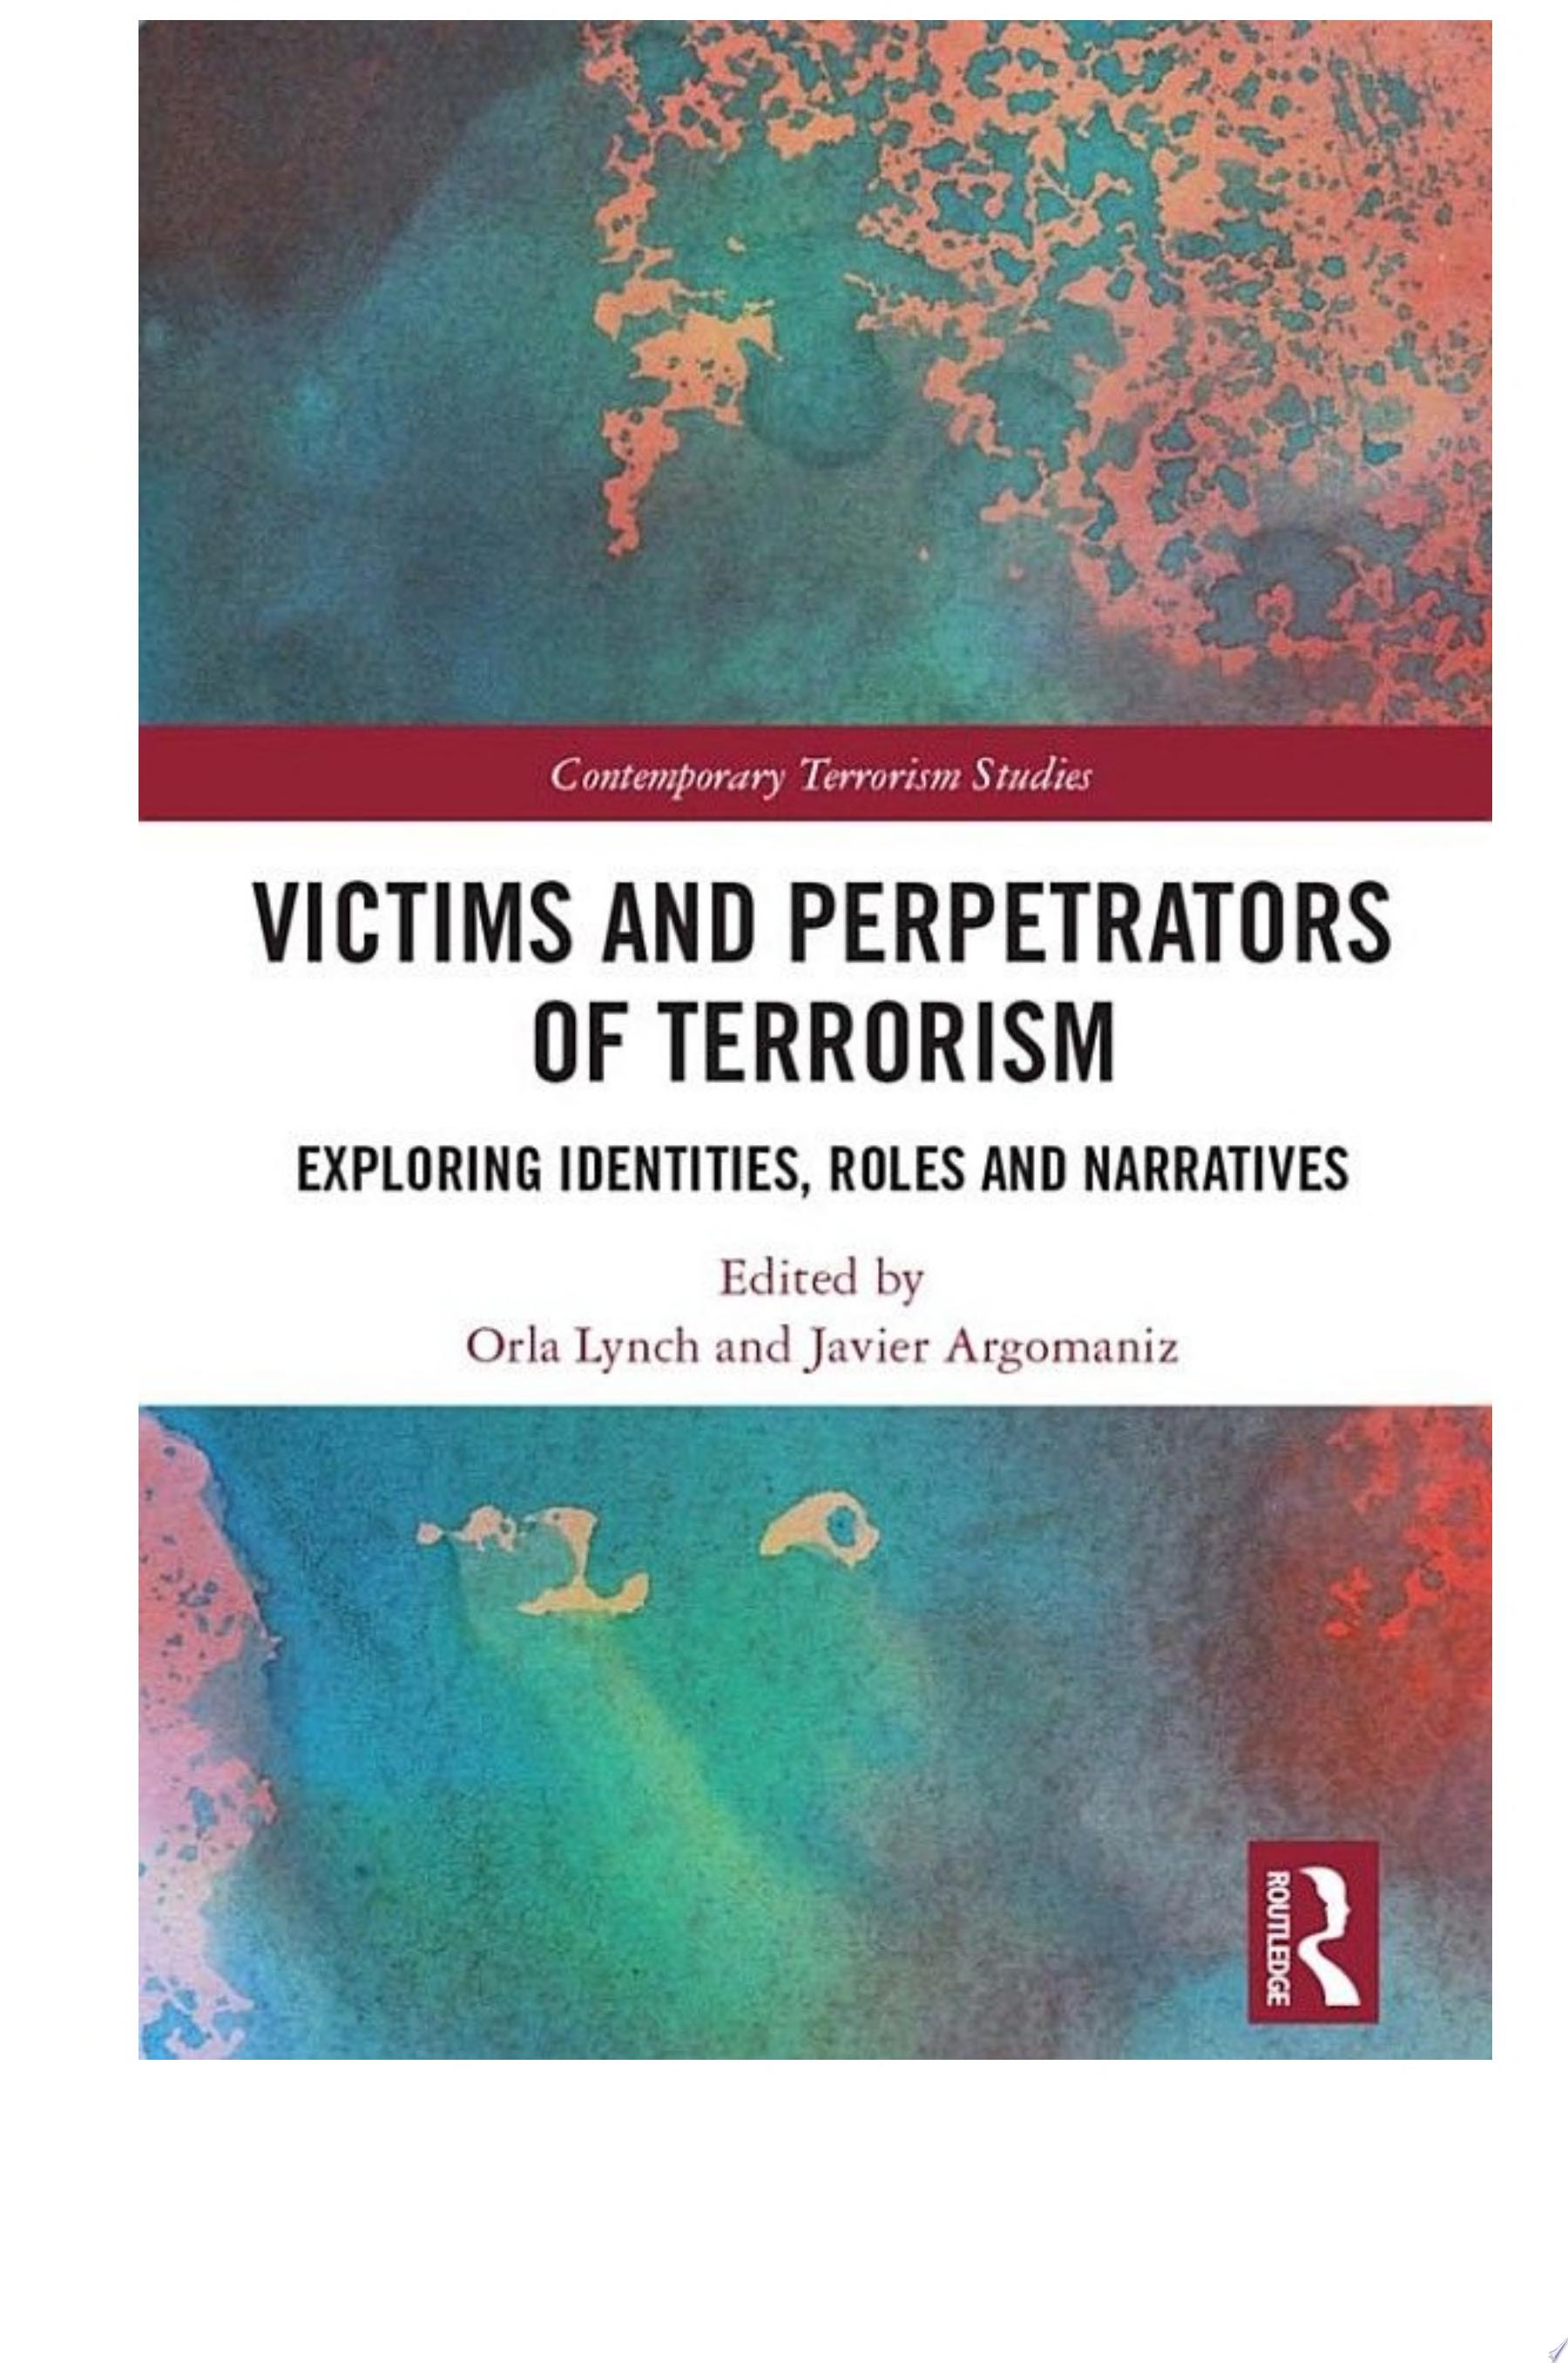 Victims and Perpetrators of Terrorism